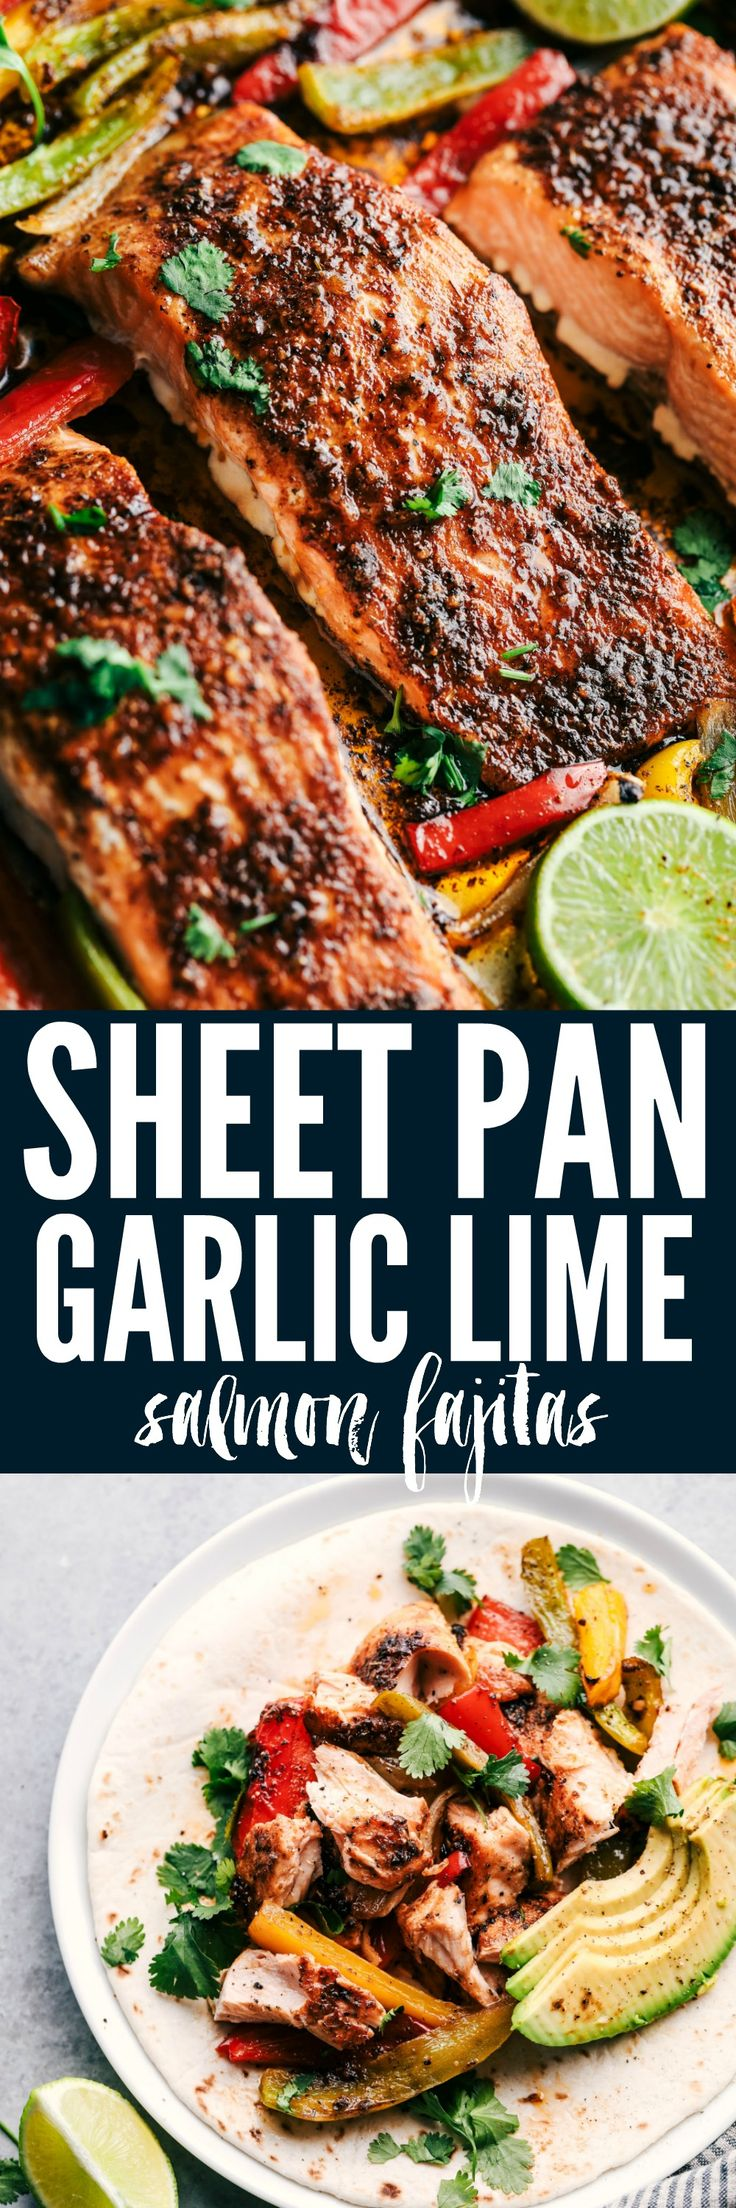 Sheet Pan Garlic Lime Salmon Fajitas are so incredibly easy and packed with so much flavor! Tender and flaky salmon with peppers are all made on one sheet pan for easy cleanup!